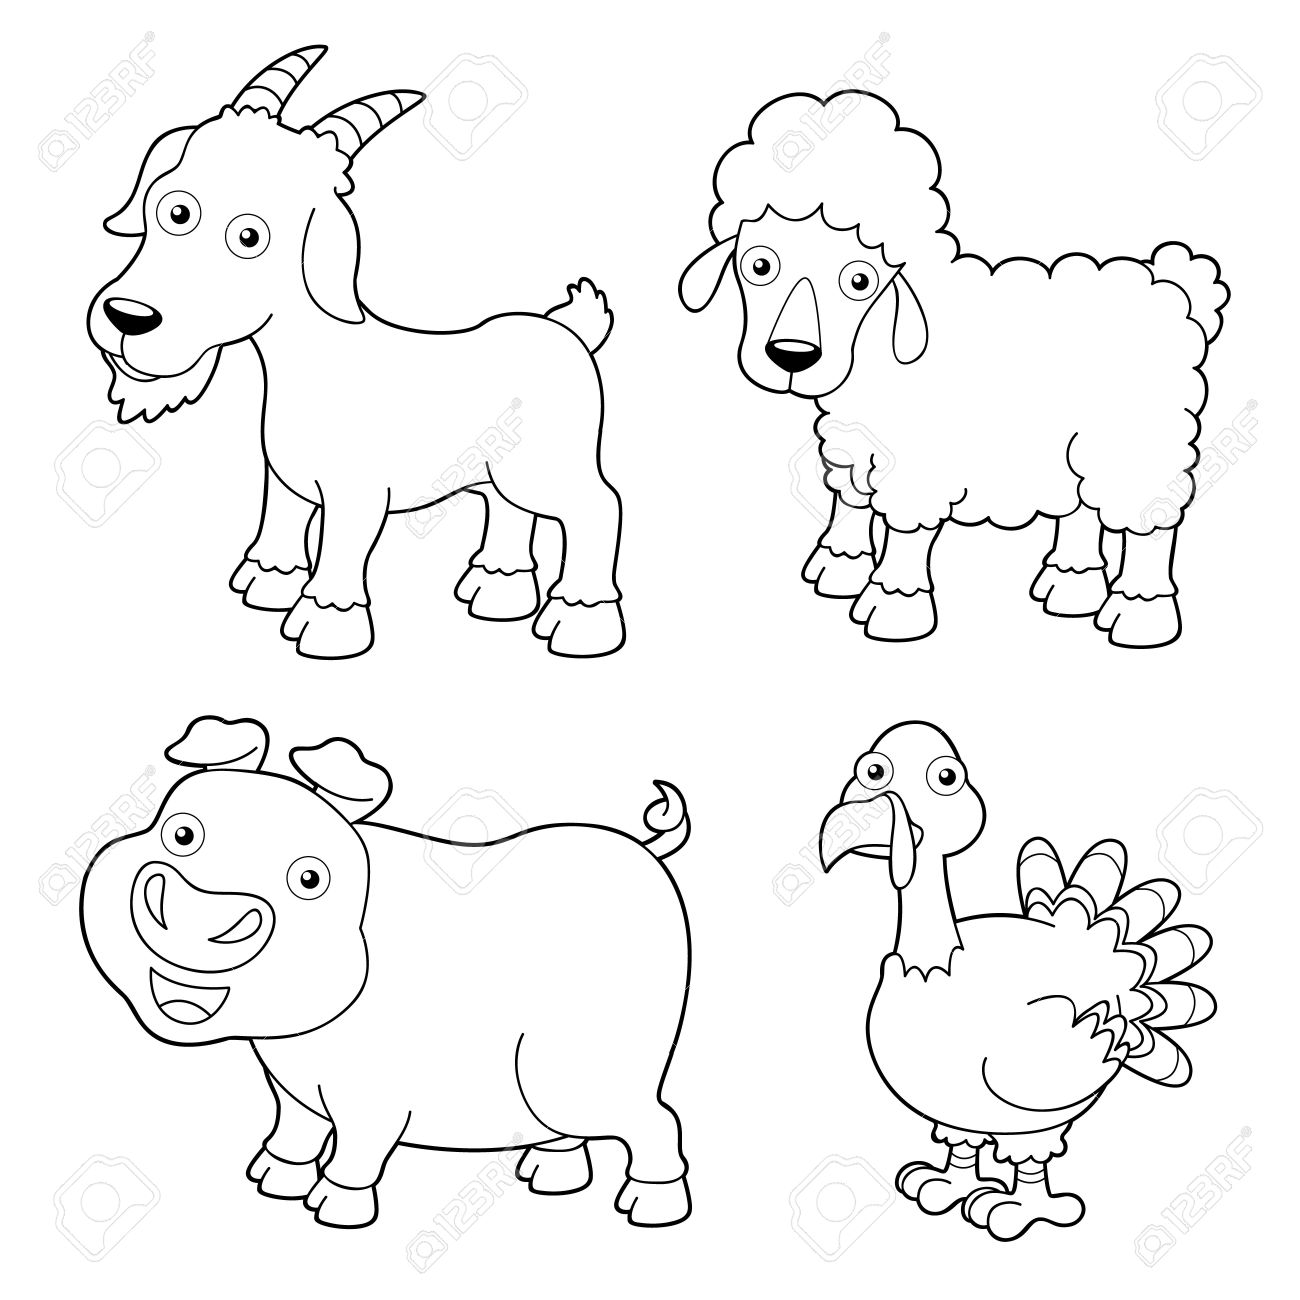 Illustration Of Farm Animals Cartoon - Coloring Book Royalty Free ...